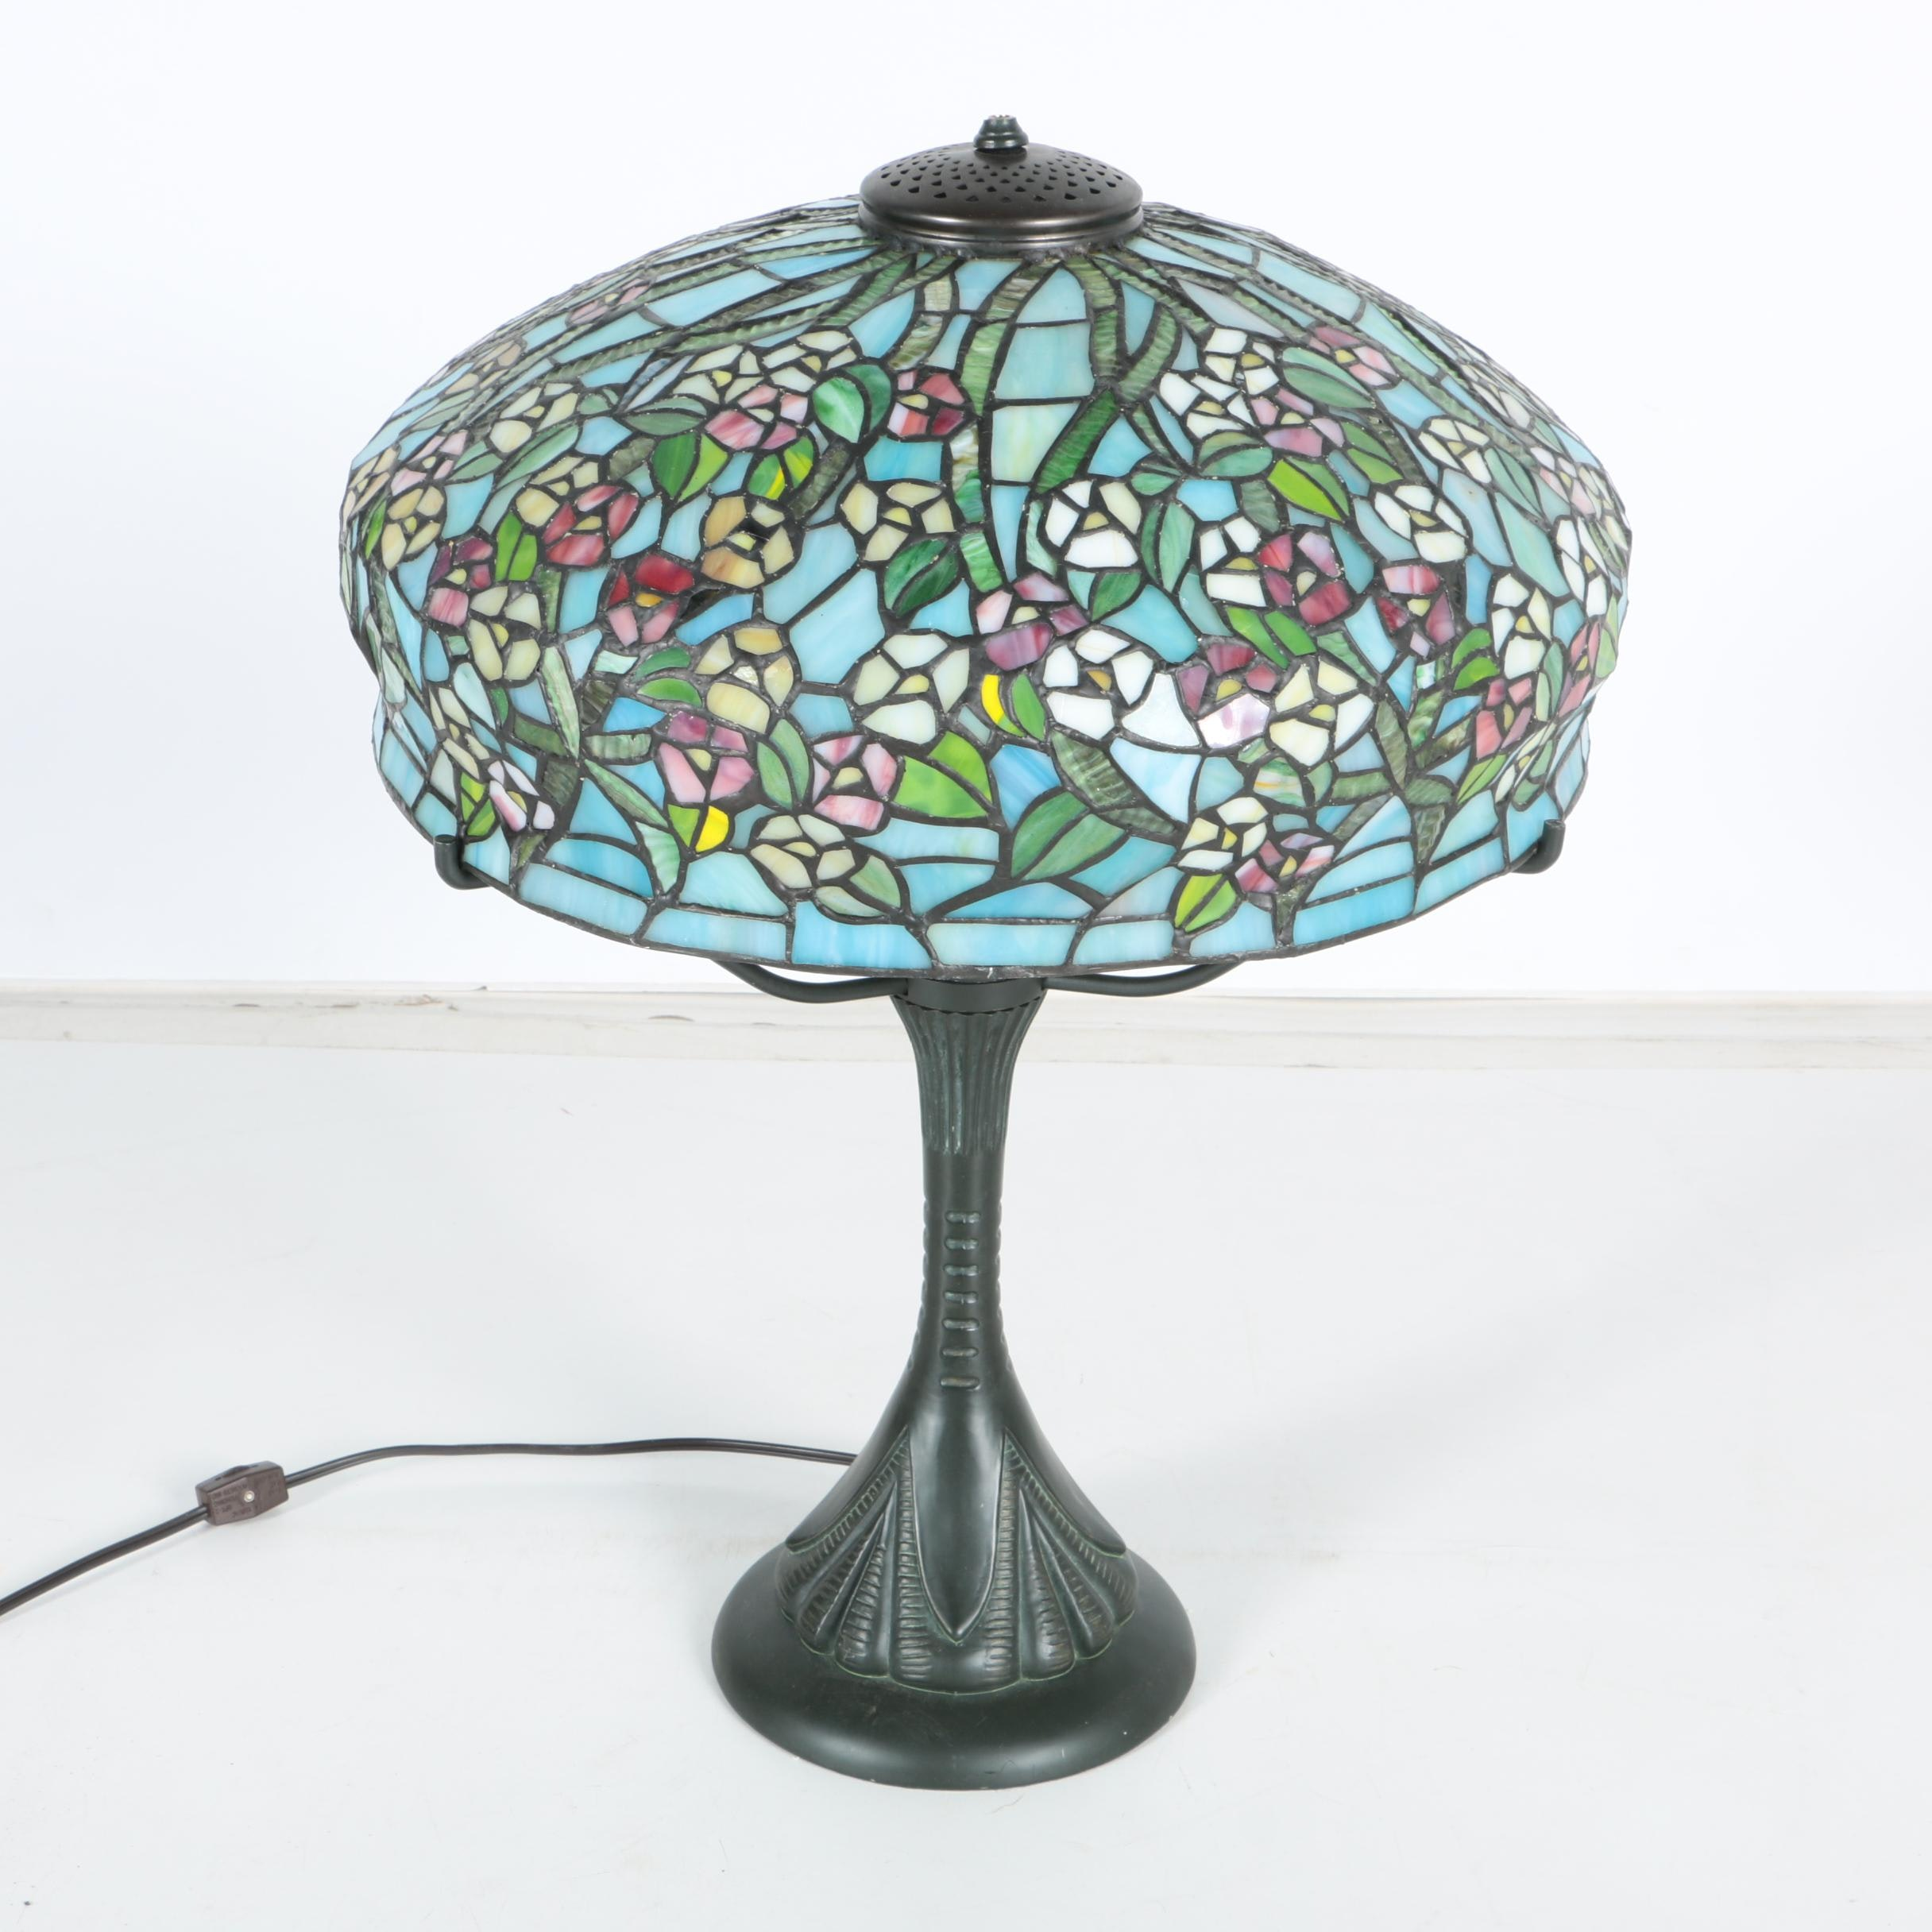 Tiffany Reproduction Lamp with Floral Slag Glass Shade